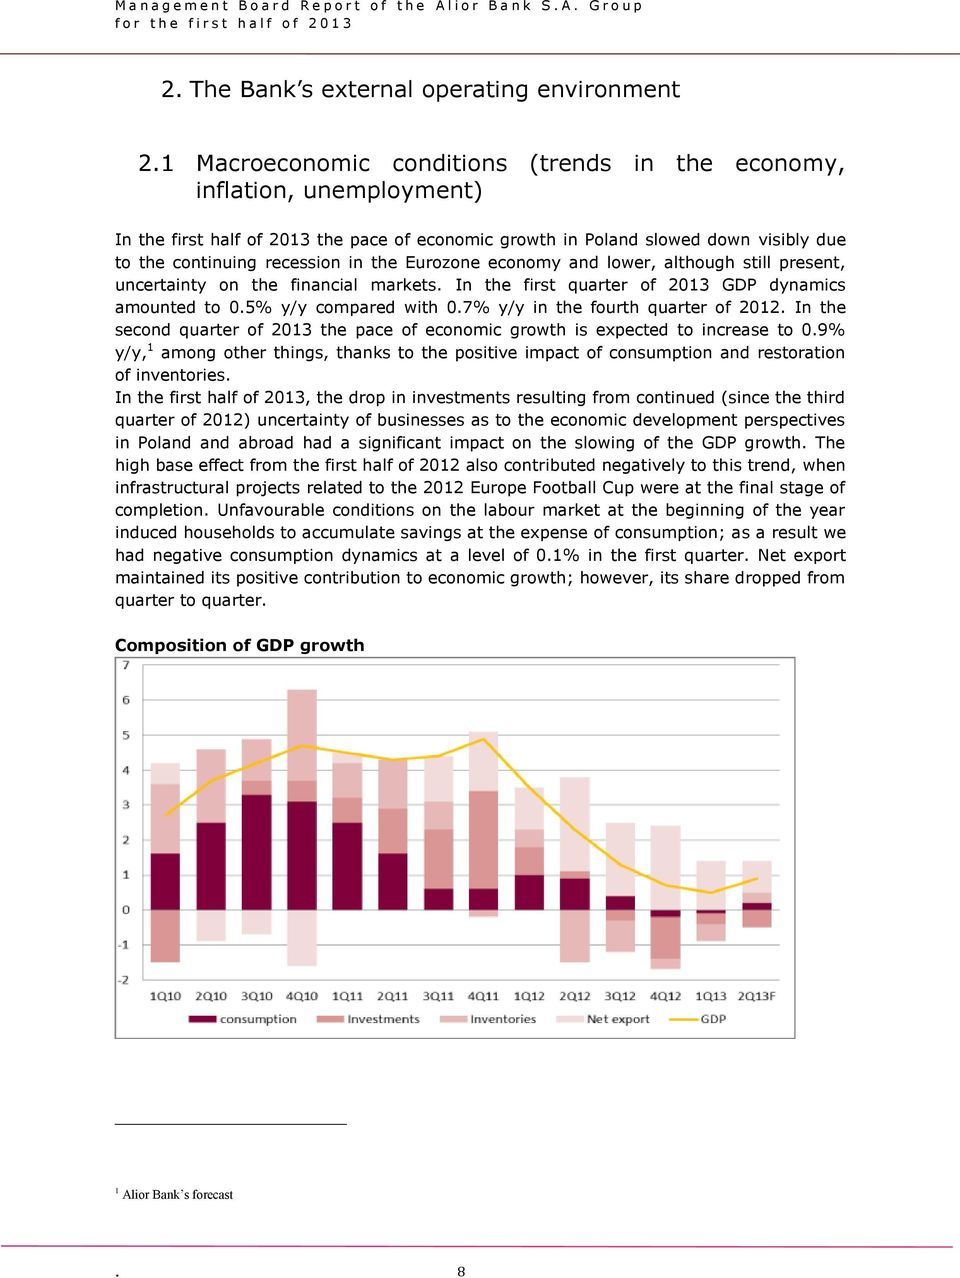 Eurozone economy and lower, although still present, uncertainty on the financial markets. In the first quarter of 2013 GDP dynamics amounted to 0.5% y/y compared with 0.